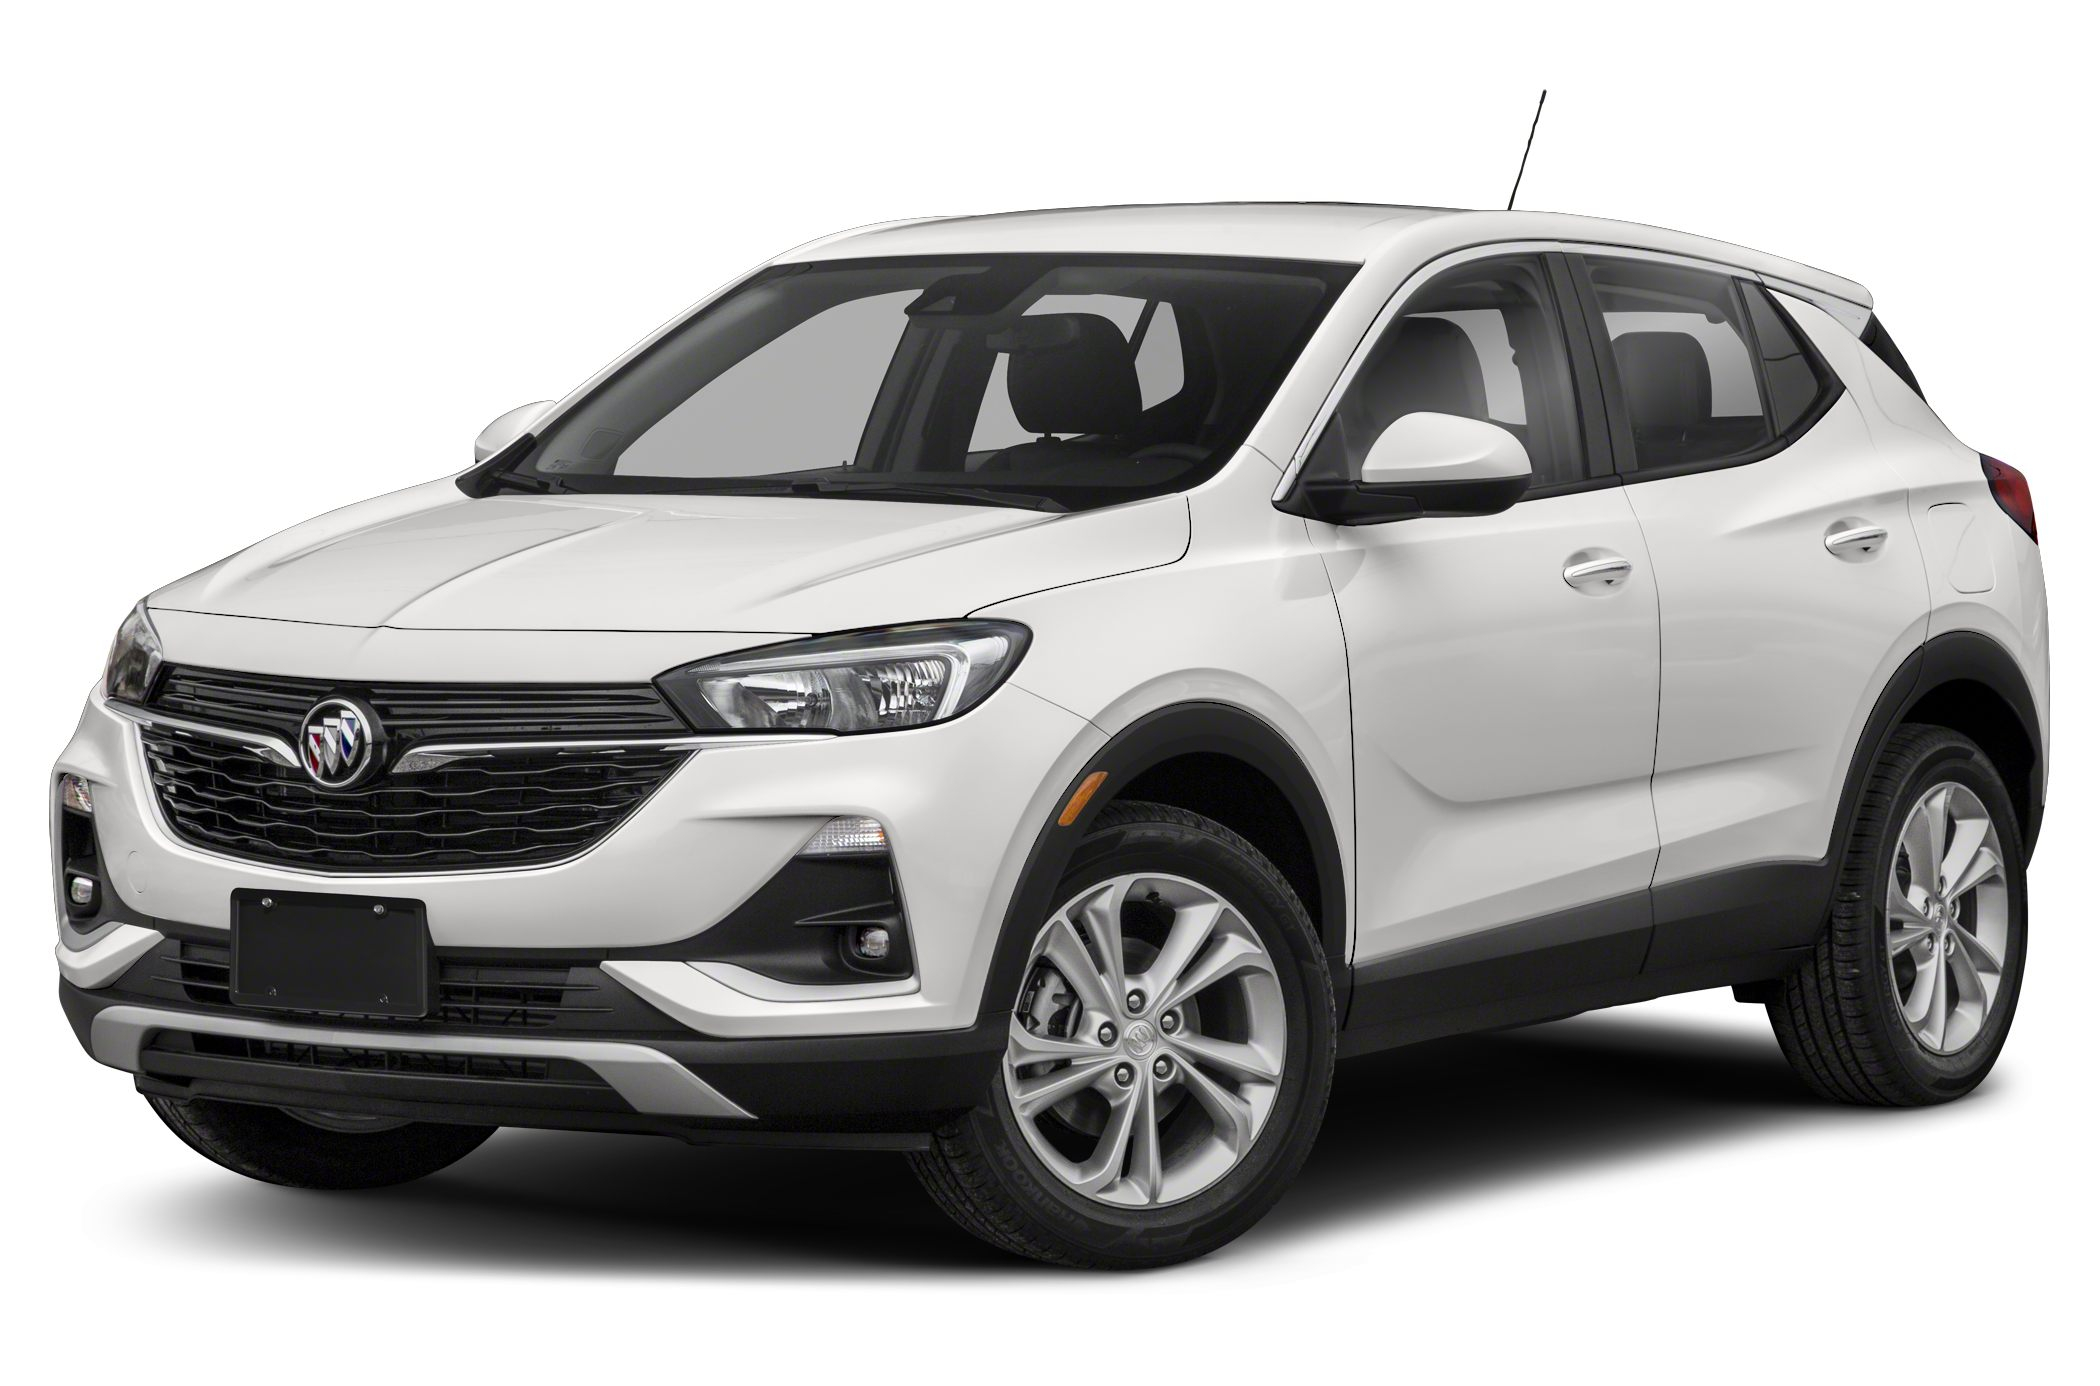 2020 Buick Encore Gx Essence All-Wheel Drive Specs And Prices 2021 Buick Encore Gx Safety Rating, Specifications, Tire Size